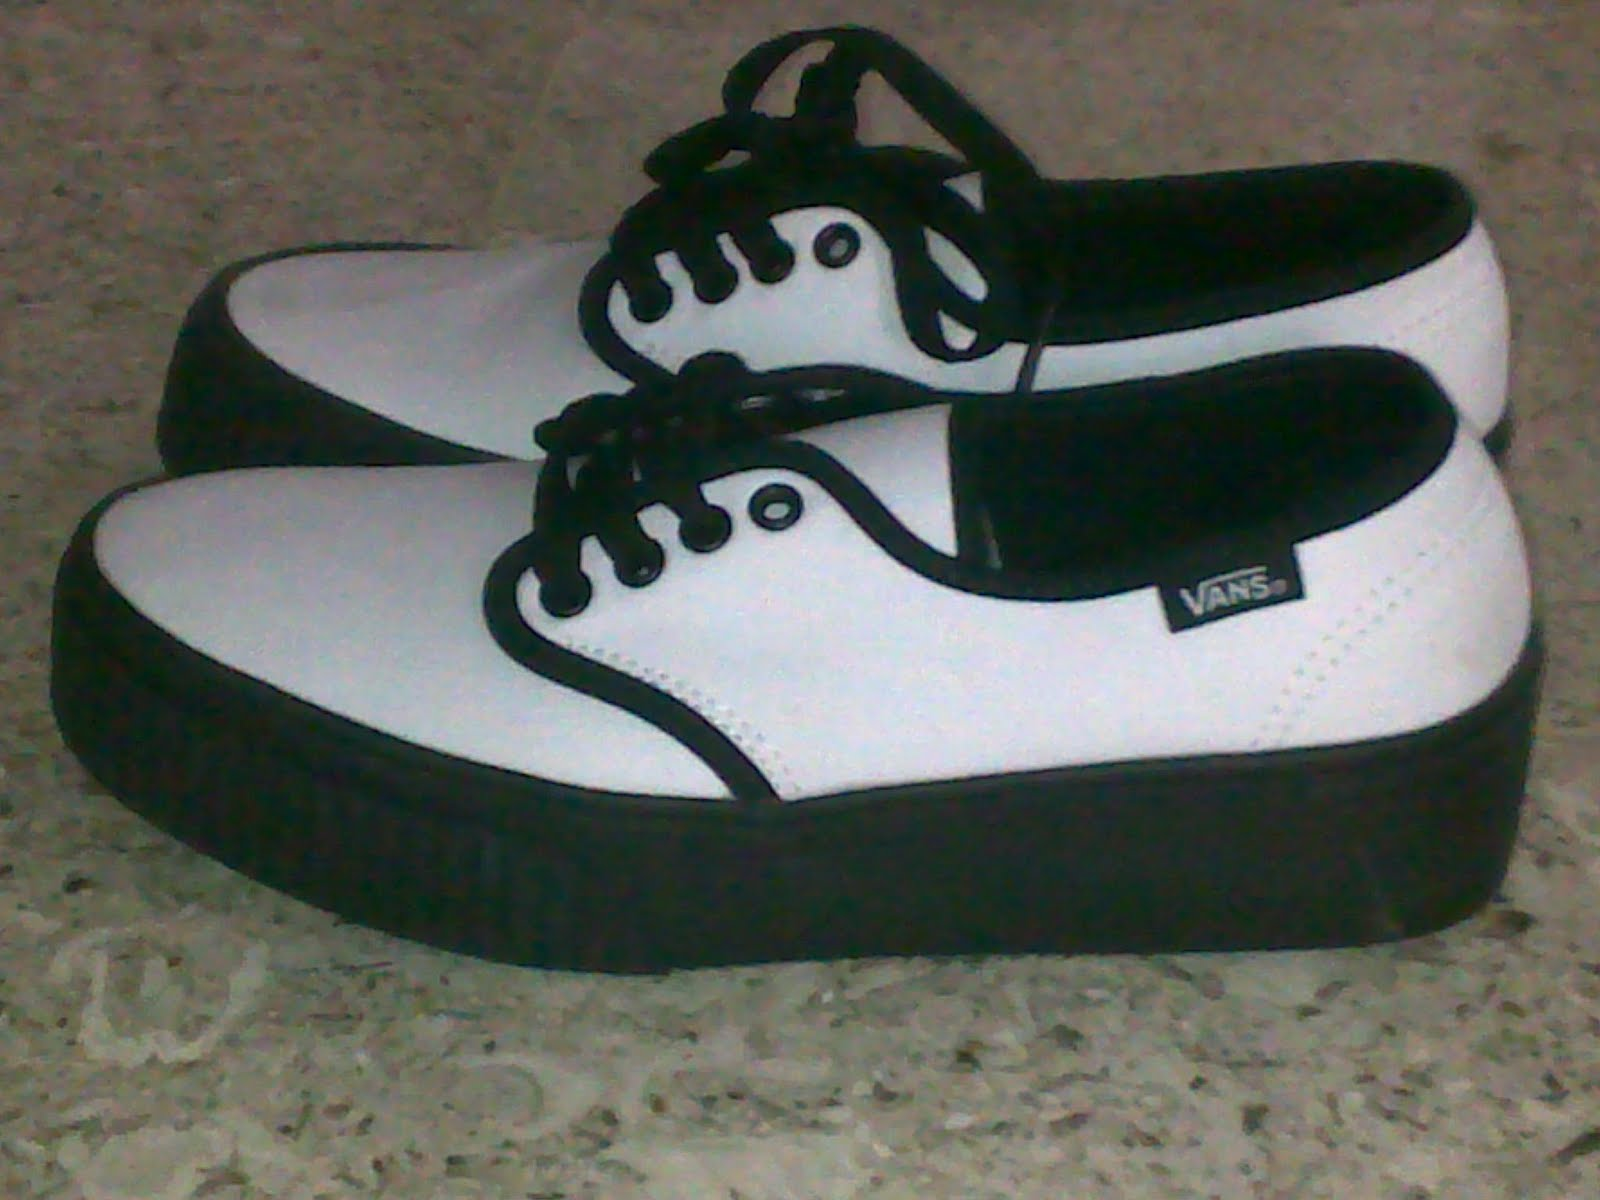 679bae72e85e7c I ve jist received as present from Vans these fantastic creepers....Thank  you! Vans off the wall!!  )